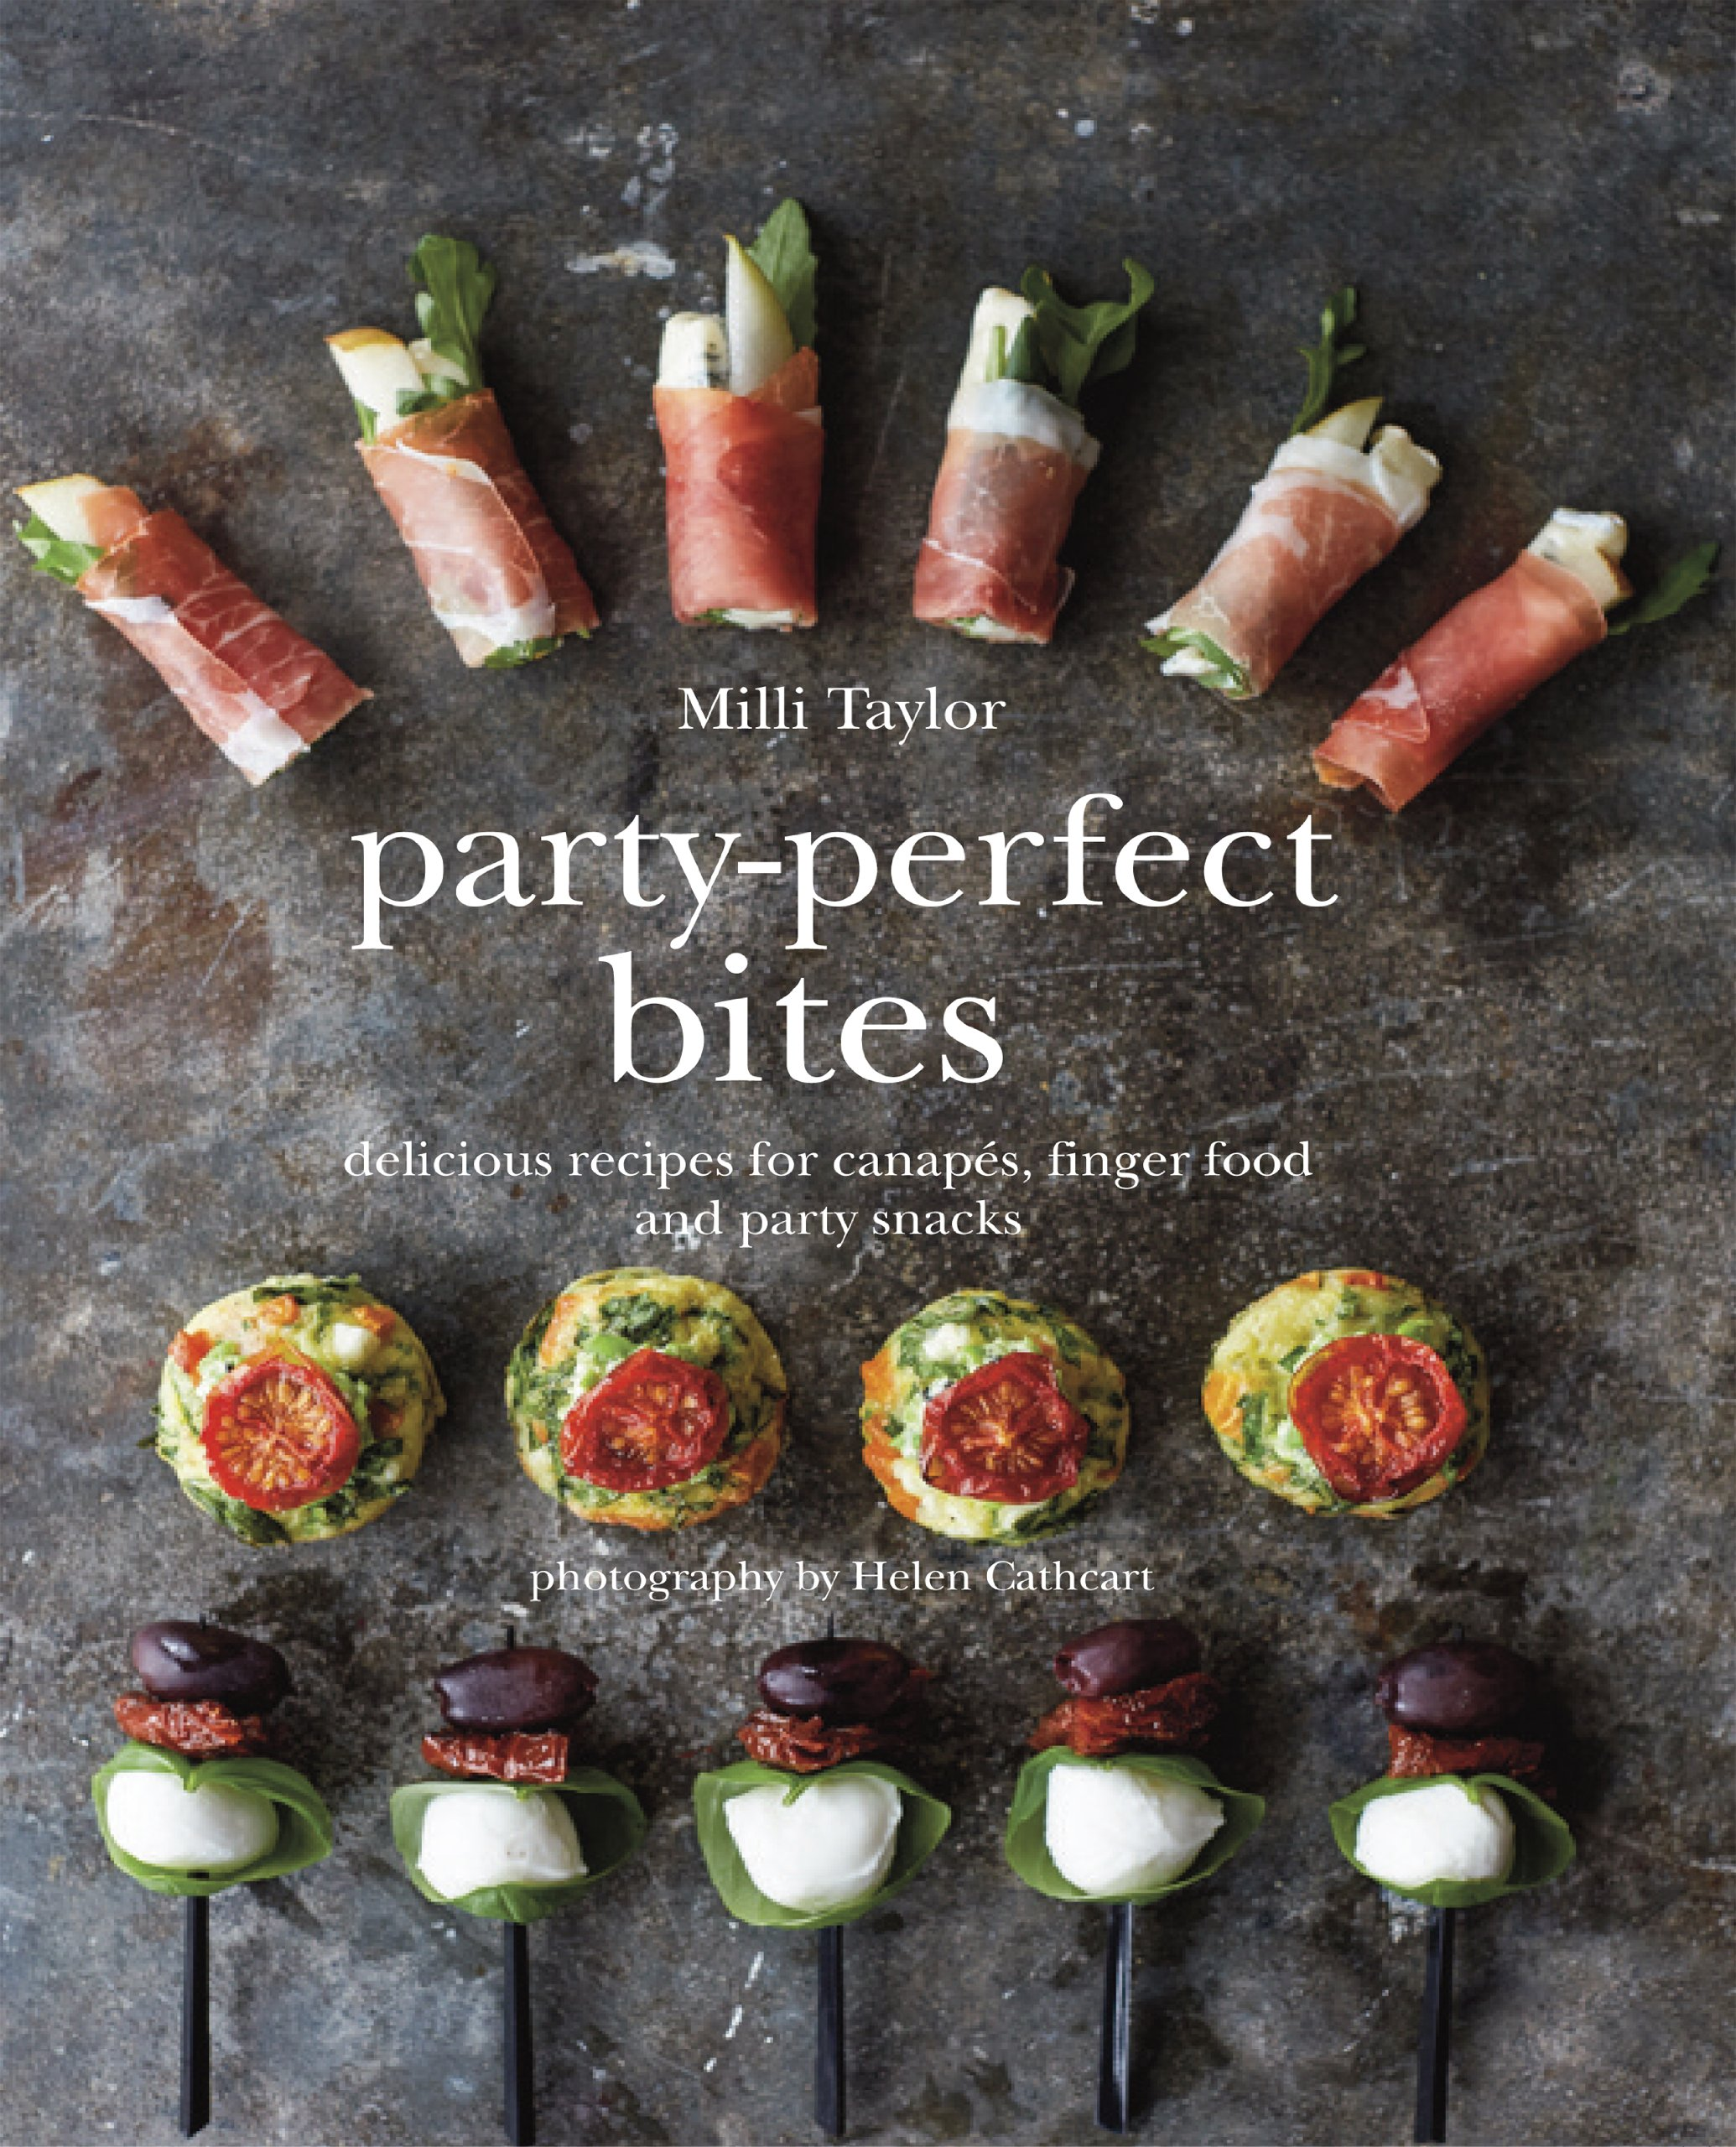 Cocktail Party Snacks Ideas Part - 45: Party-Perfect Bites: Delicious Recipes For Canapés, Finger Food And Party  Snacks: Milli Taylor: 9781849755689: Amazon.com: Books